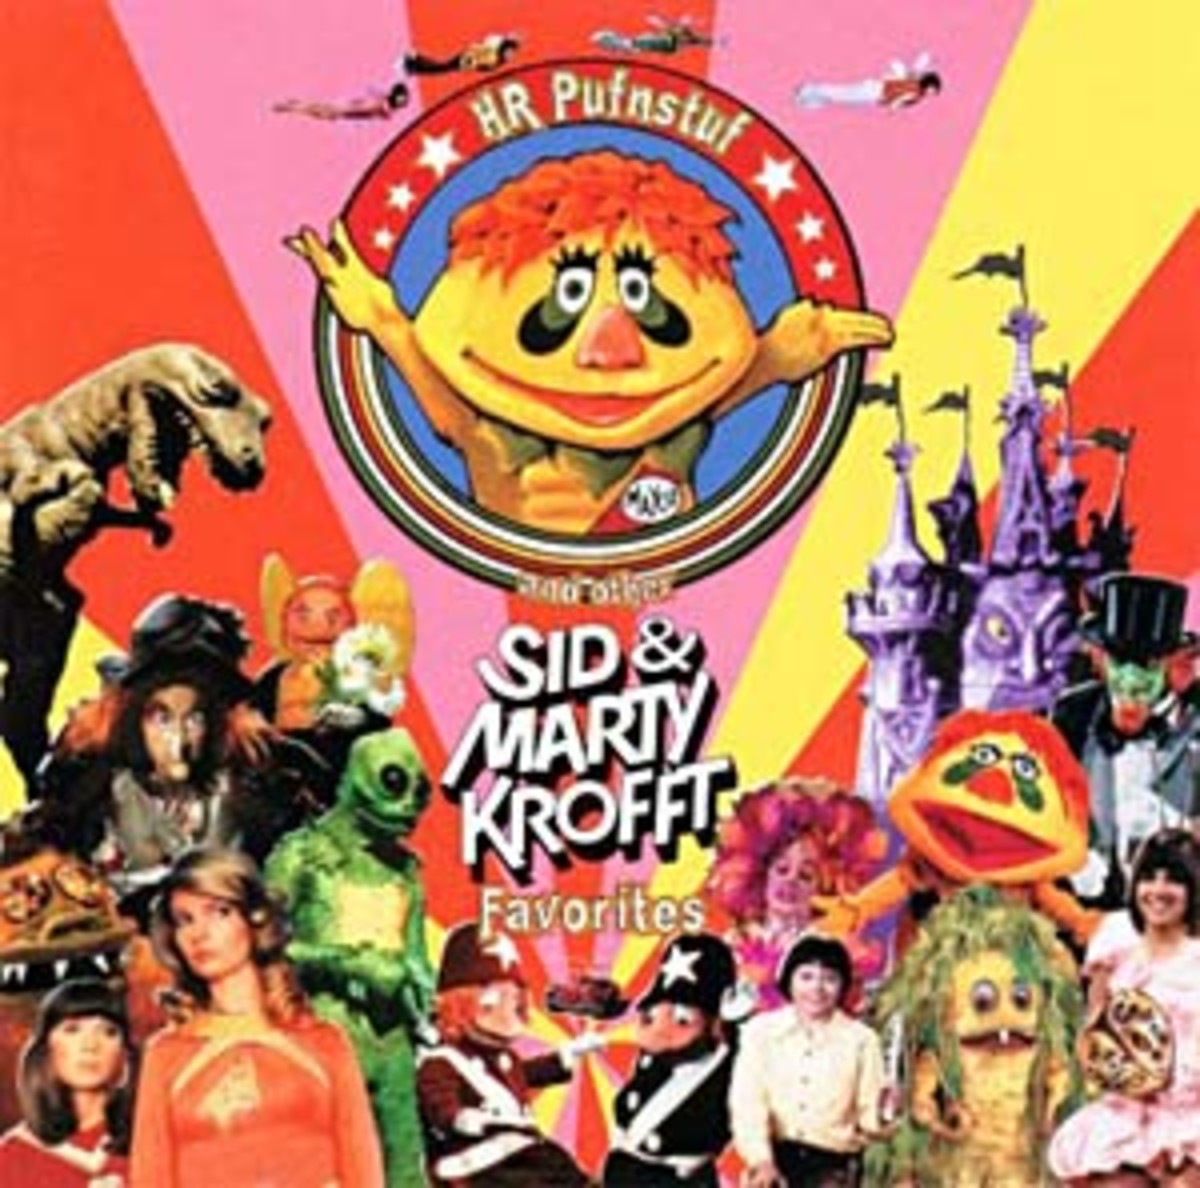 Saturday Morning TV: Sid & Marty Krofft